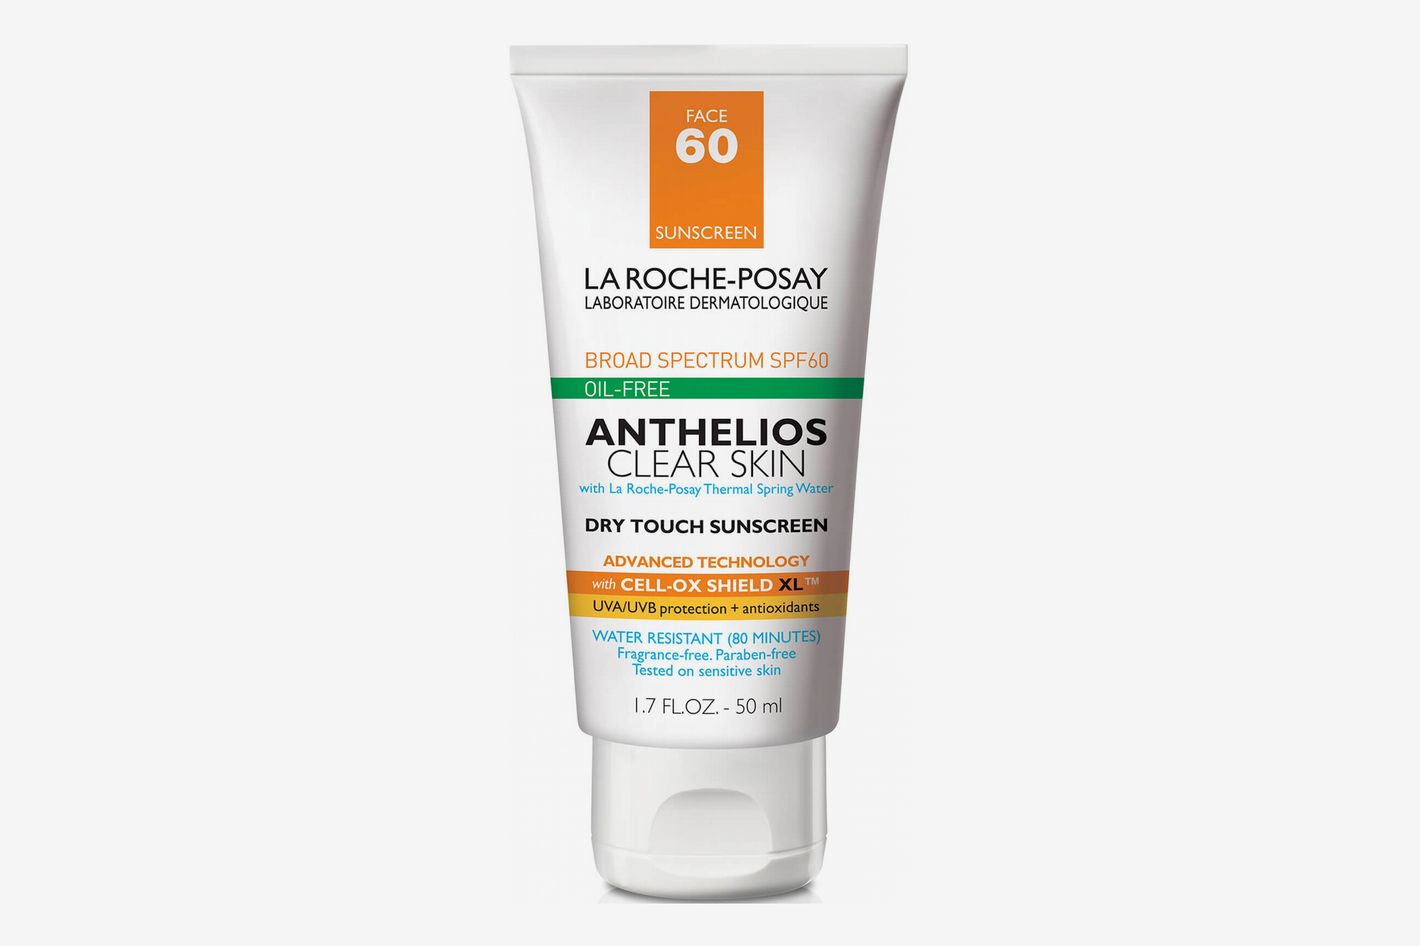 La Roche-Posay Anthelios 60 Clear Skin Dry Touch Sunscreen SPF 60